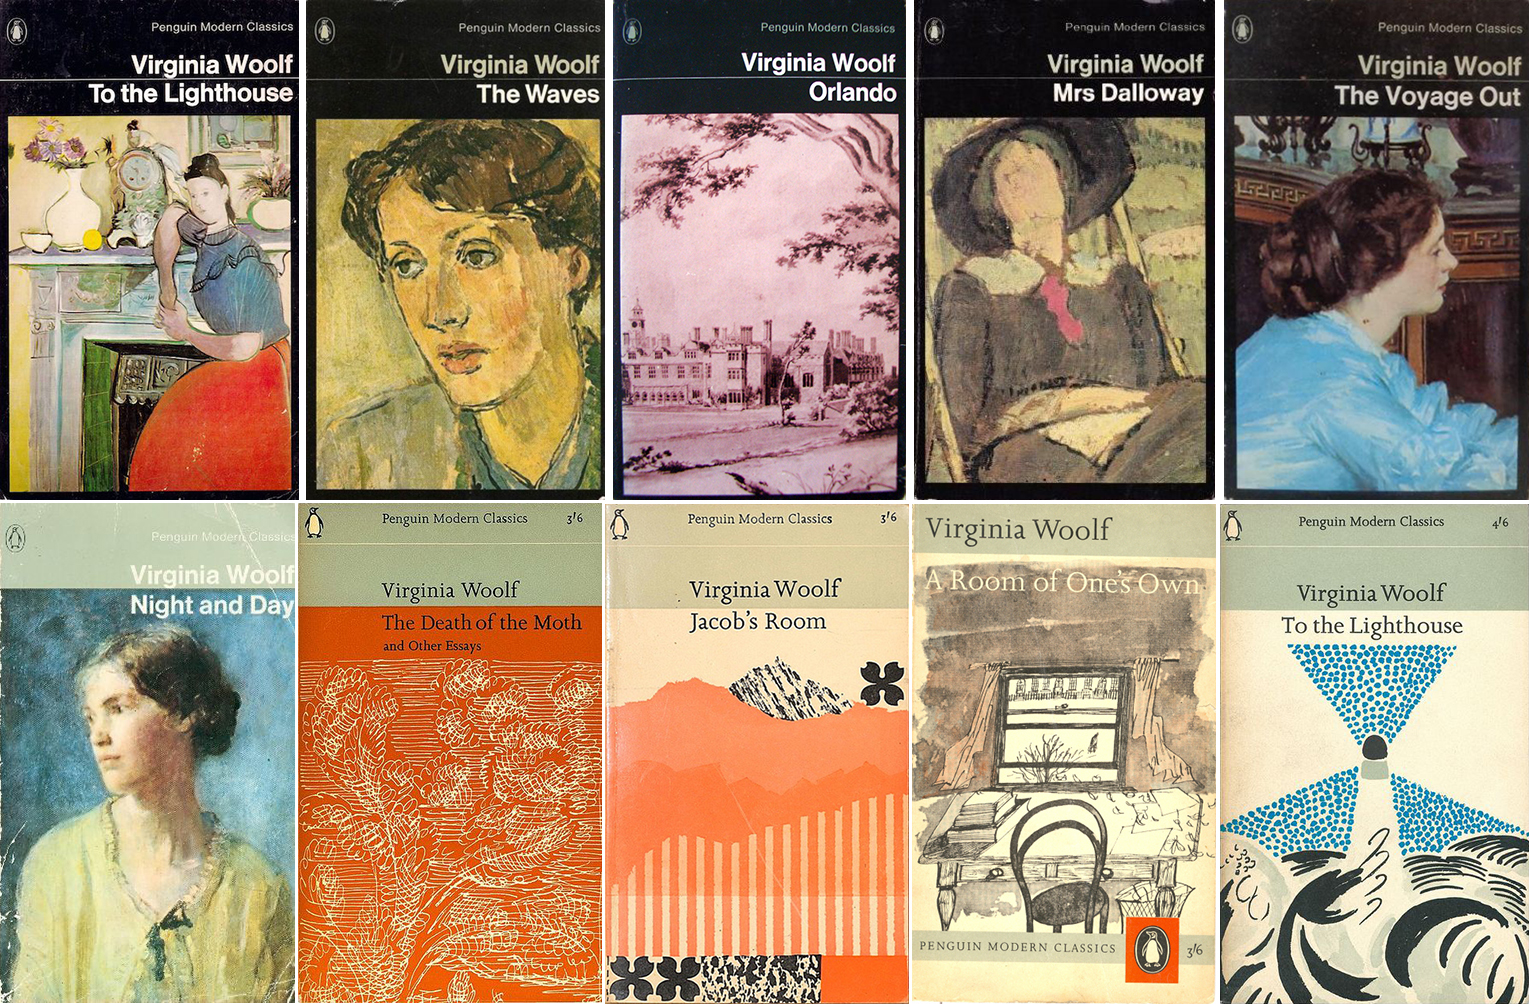 Virginia Woolf Penguin Modern Classics